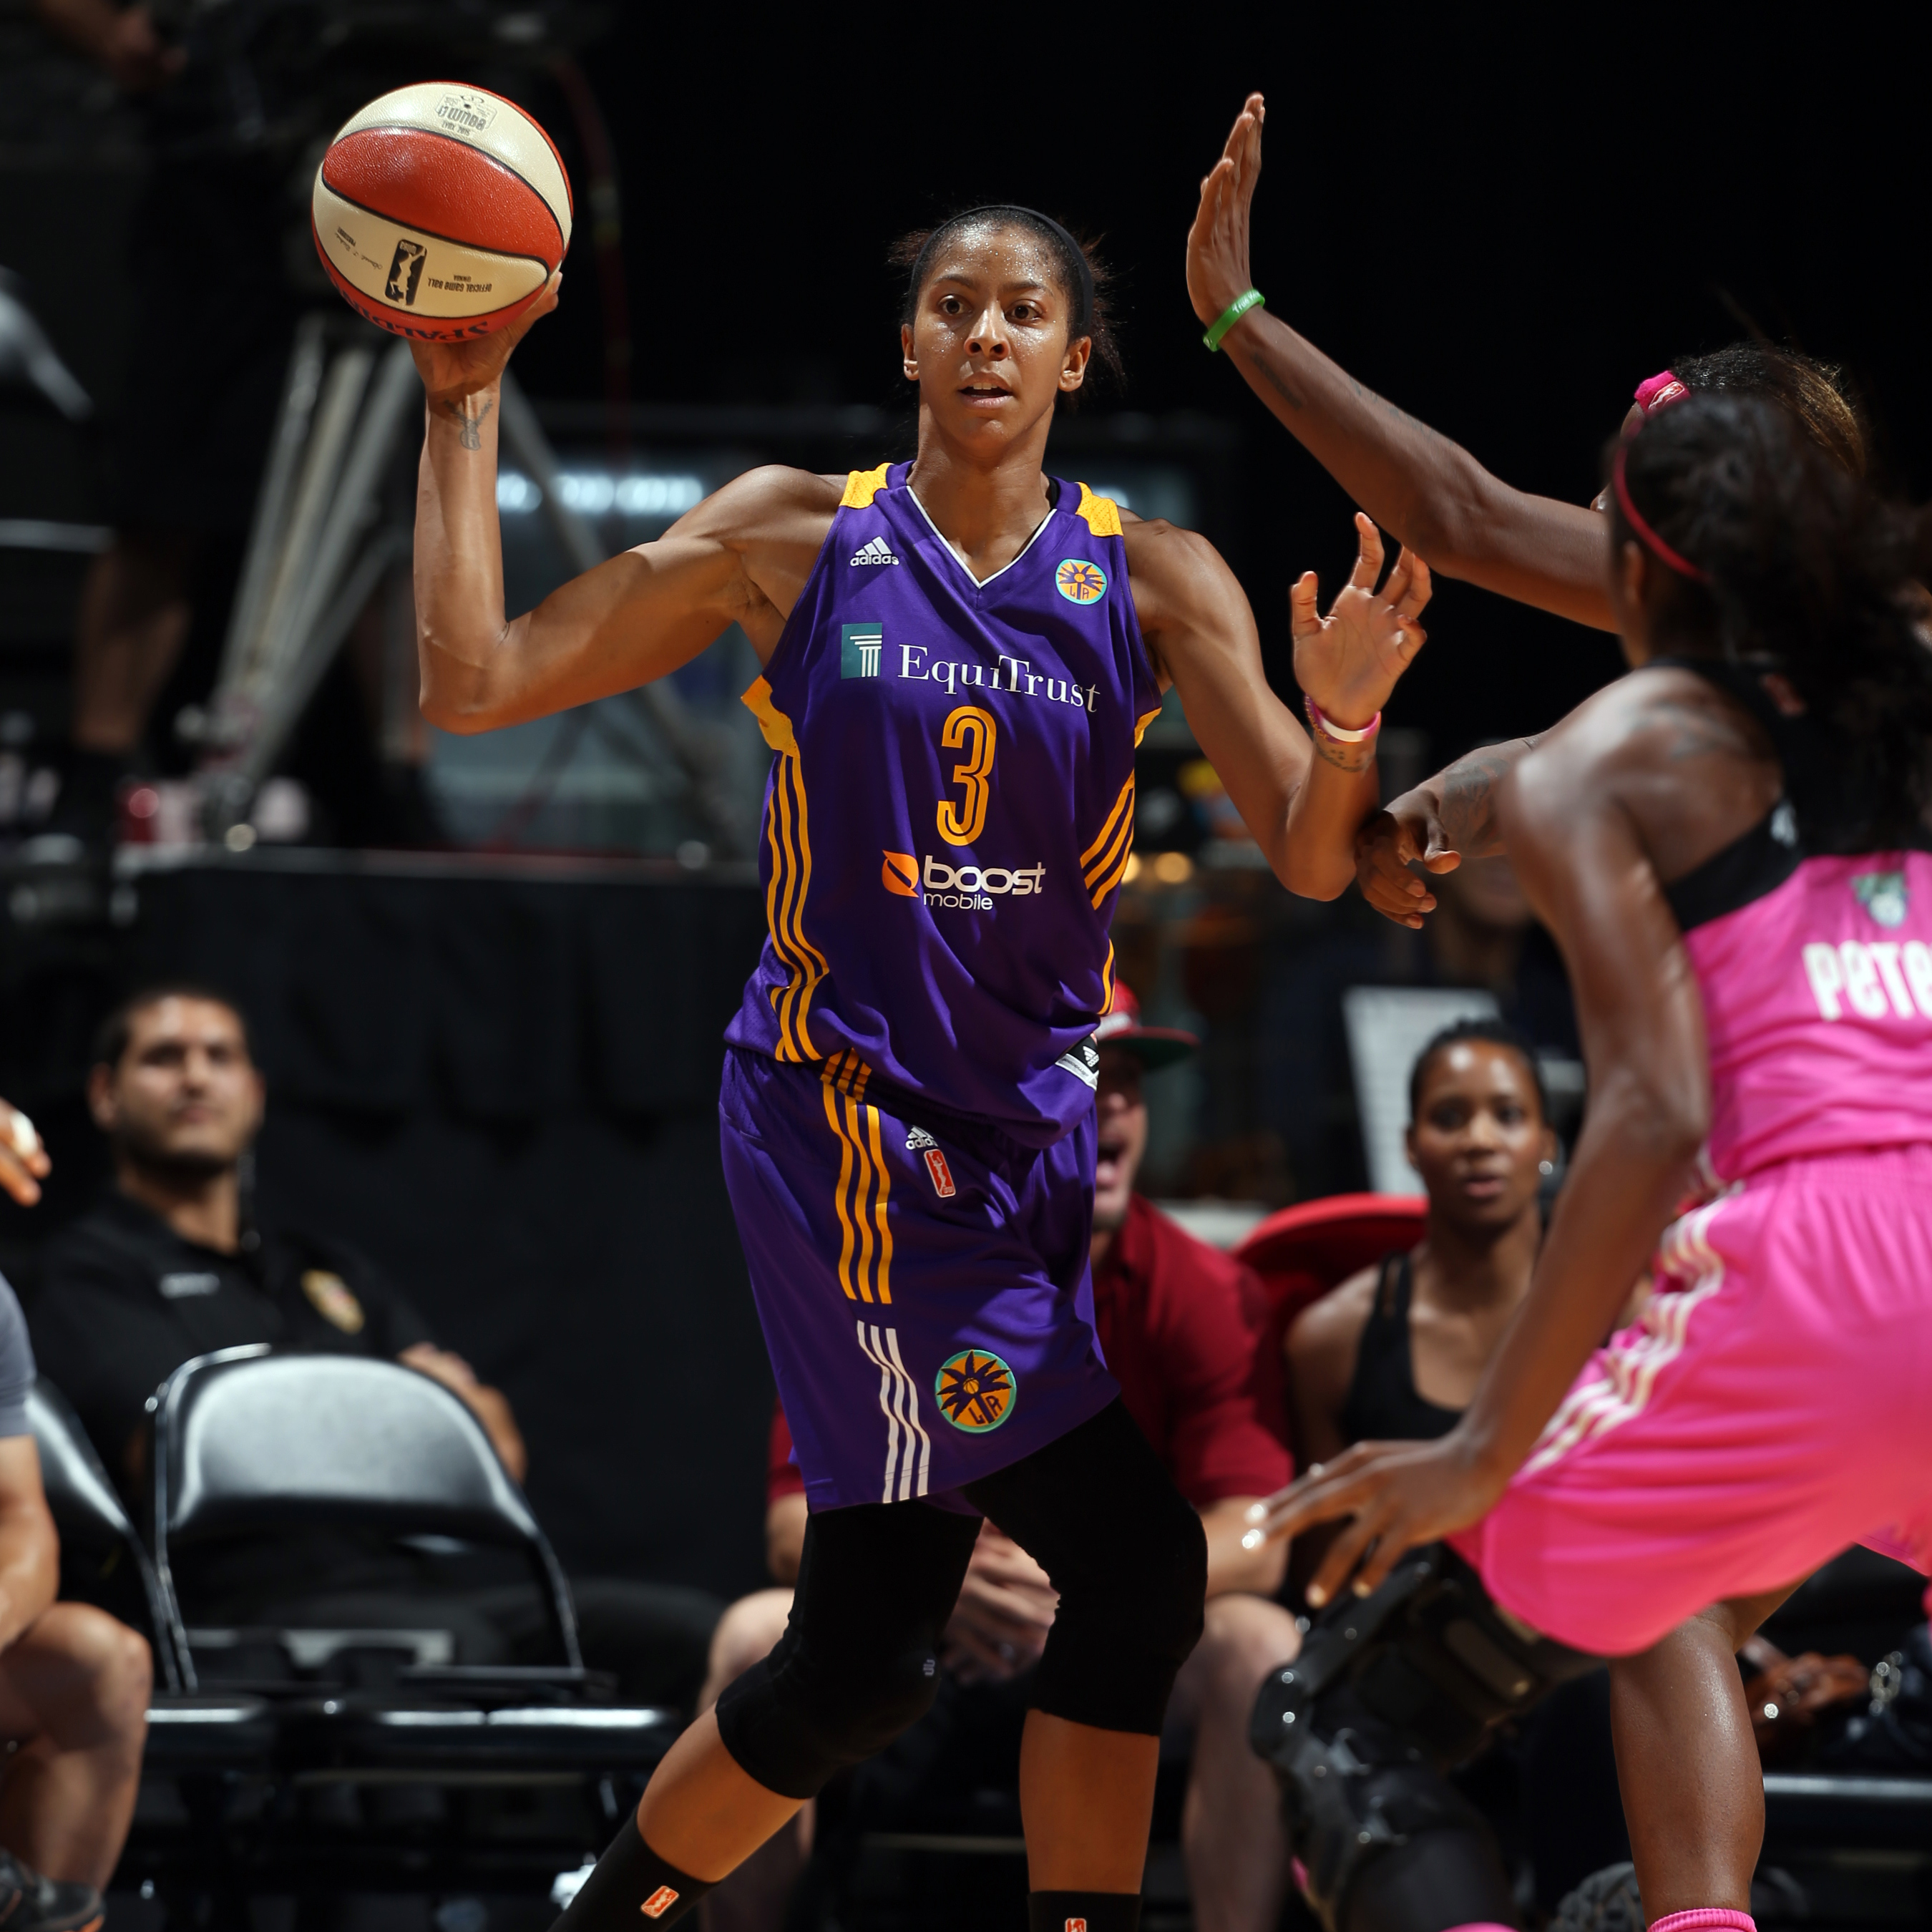 Sparks forward Candace Parker continues to do it all for Los Angeles, helping her team in multiple areas every single night. Against the Lynx, Parker finished with 10 points, eight rebounds, six assists, two steals and three blocked shots.